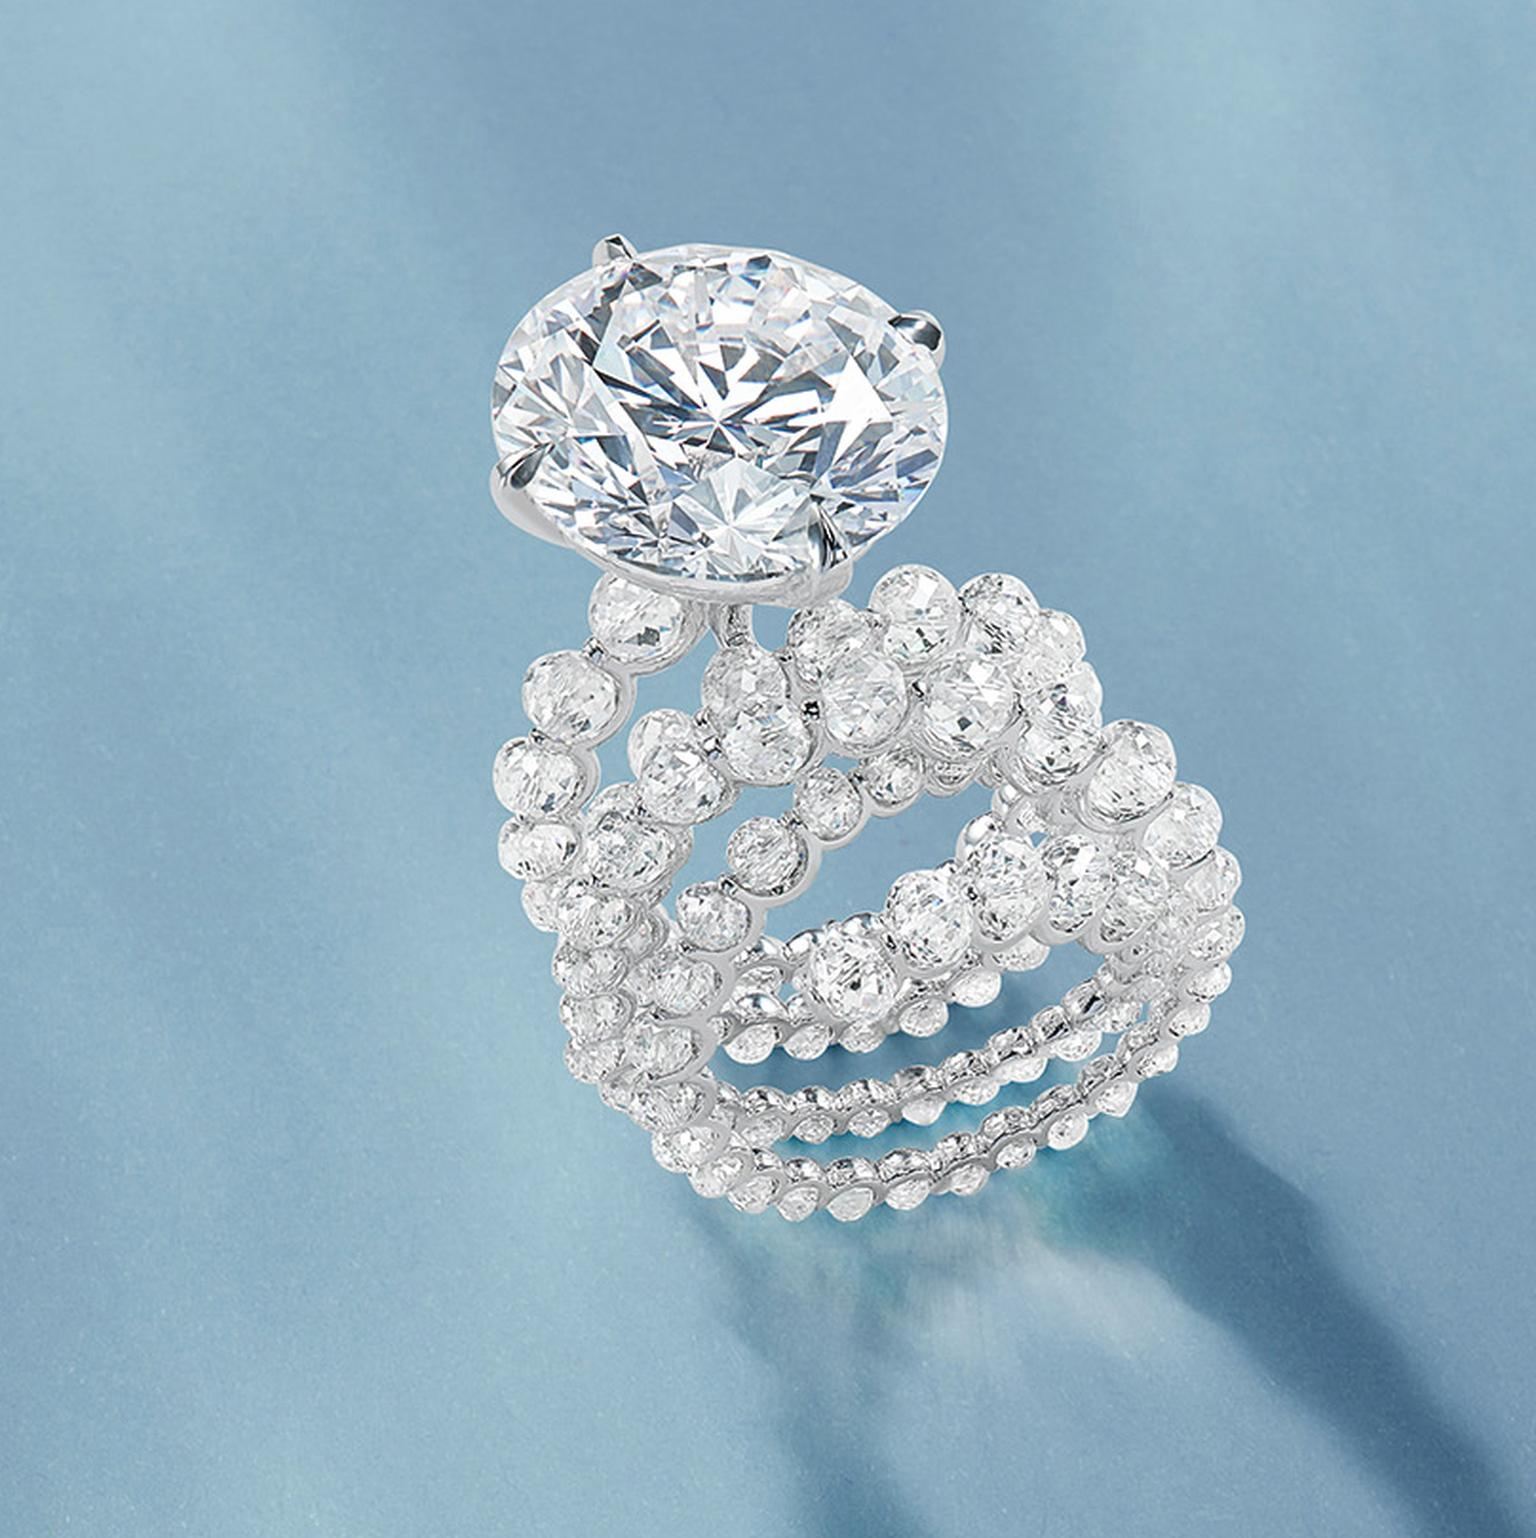 Lot 648 Fountain of Diamonds ring by Feng J